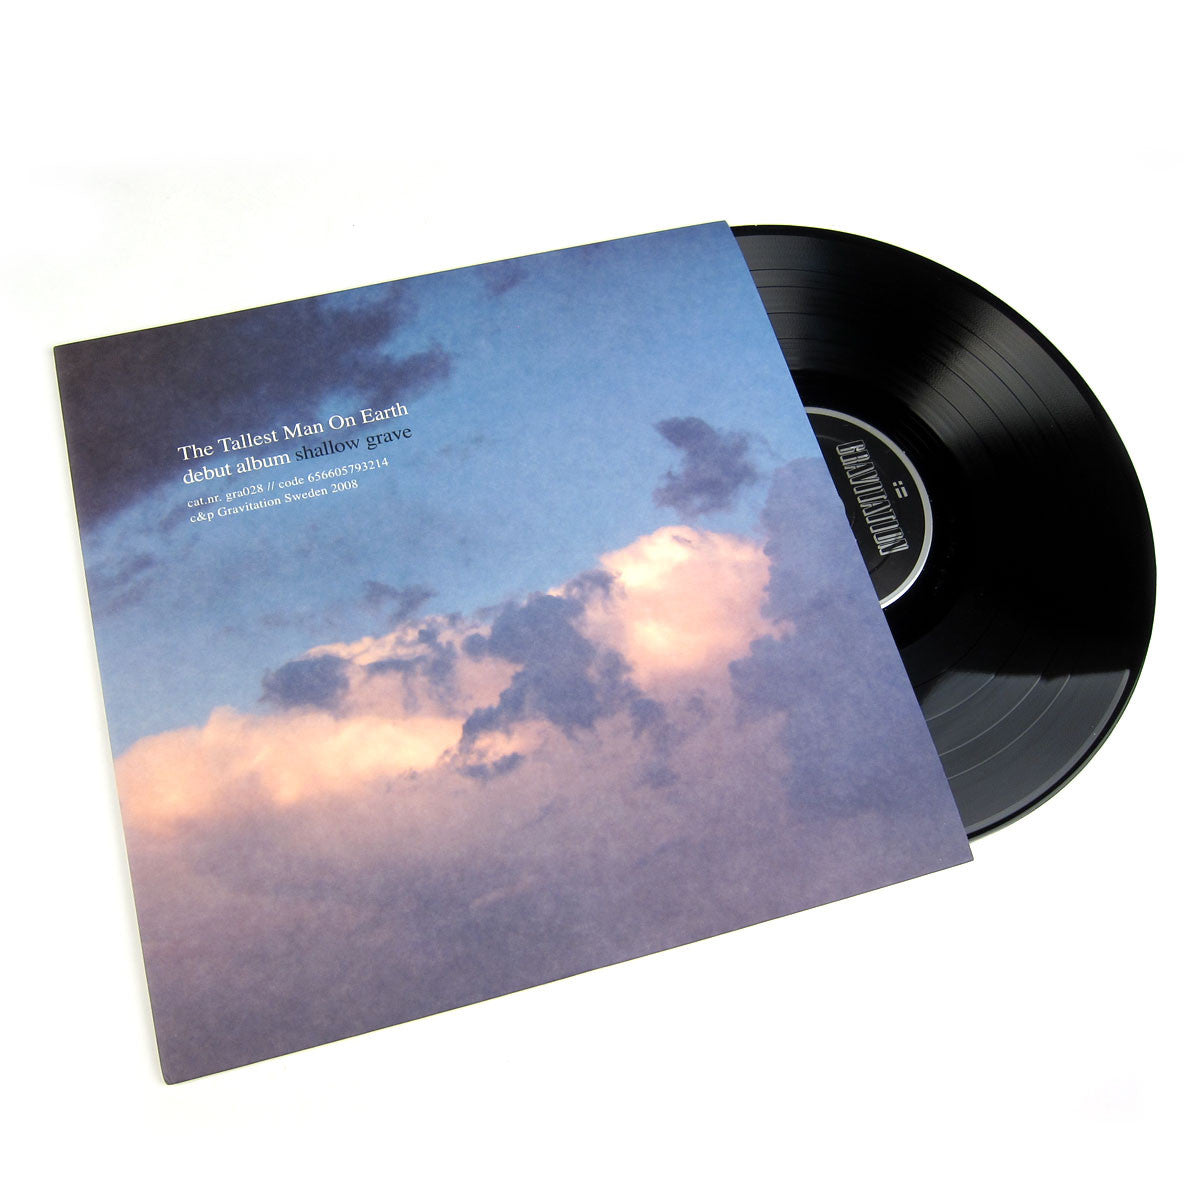 The Tallest Man On Earth: Shallow Grave (Free MP3) Vinyl LP